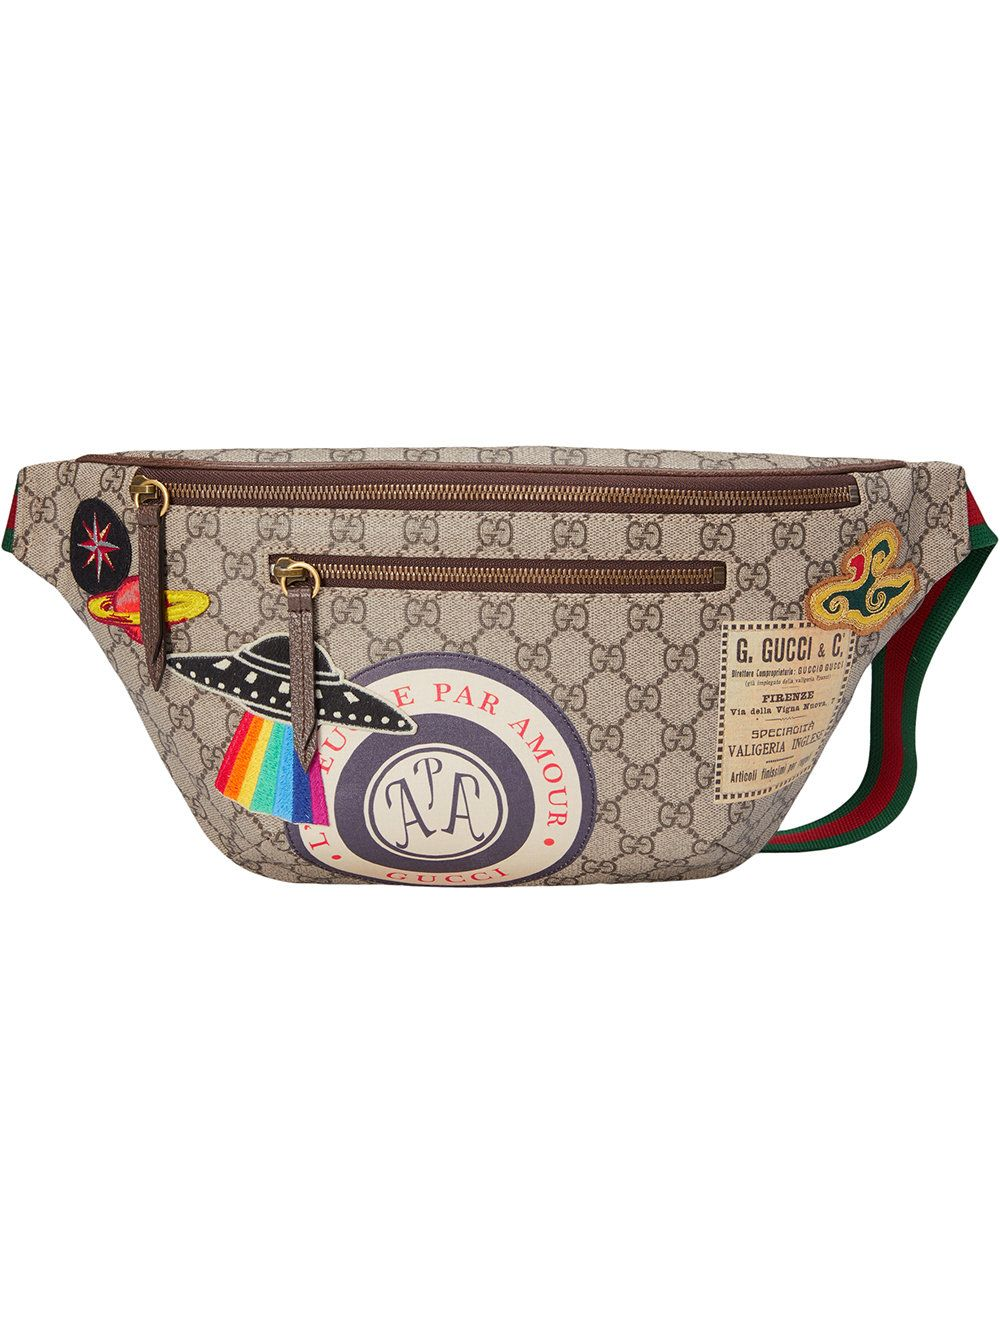 6d604c9f846b01 Gucci Gucci Courrier GG Supreme belt bag | Bags | Bags, Fashion ...